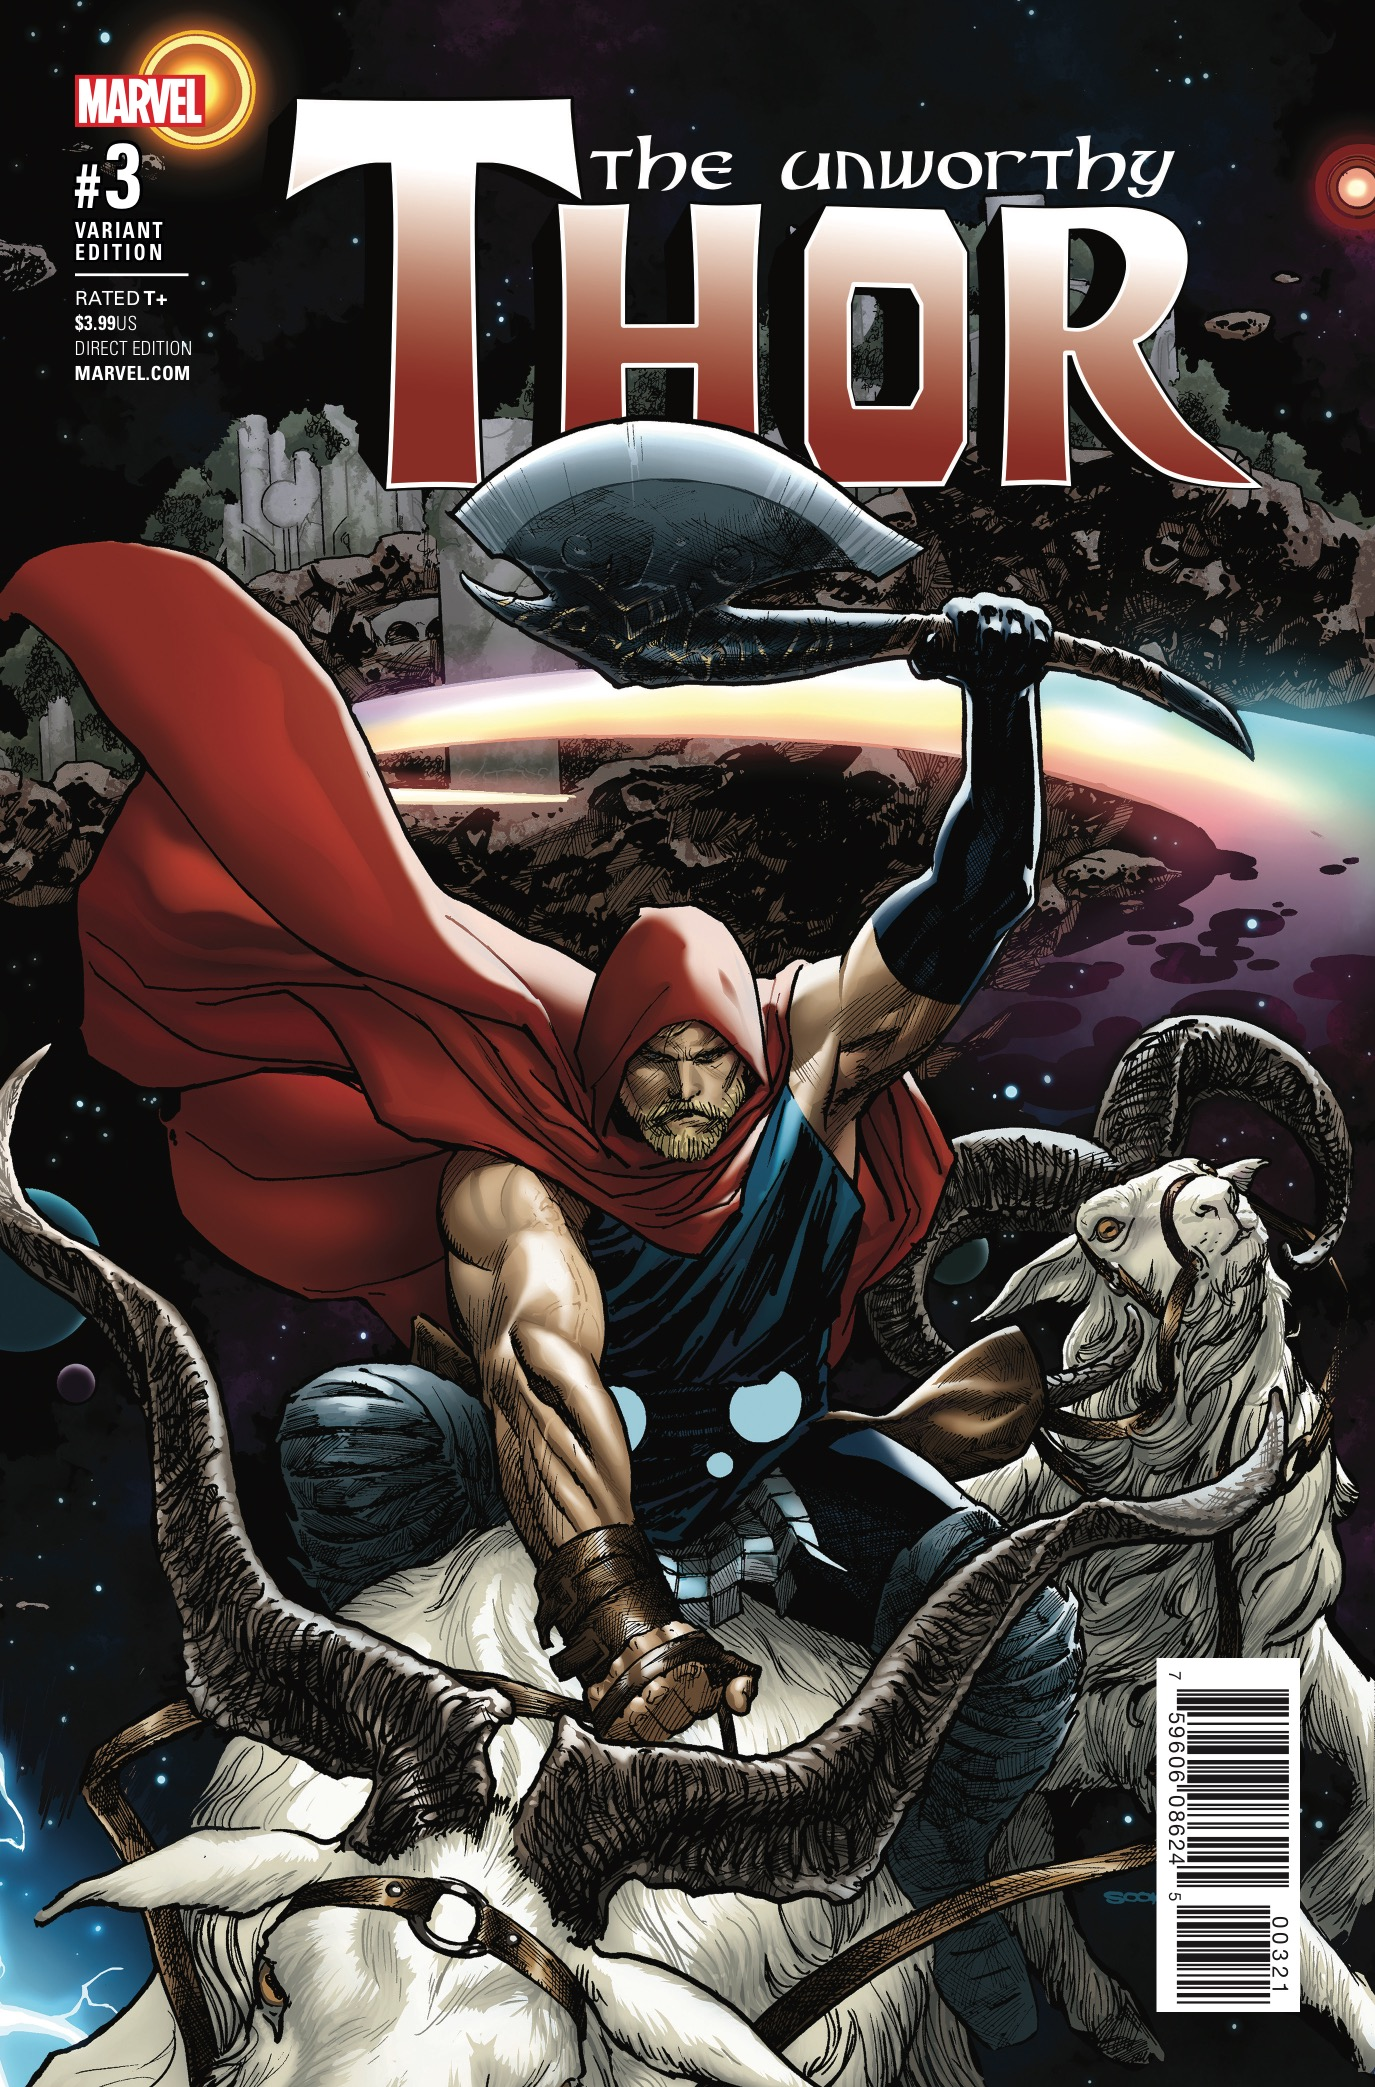 The Unworthy Thor #3 Review